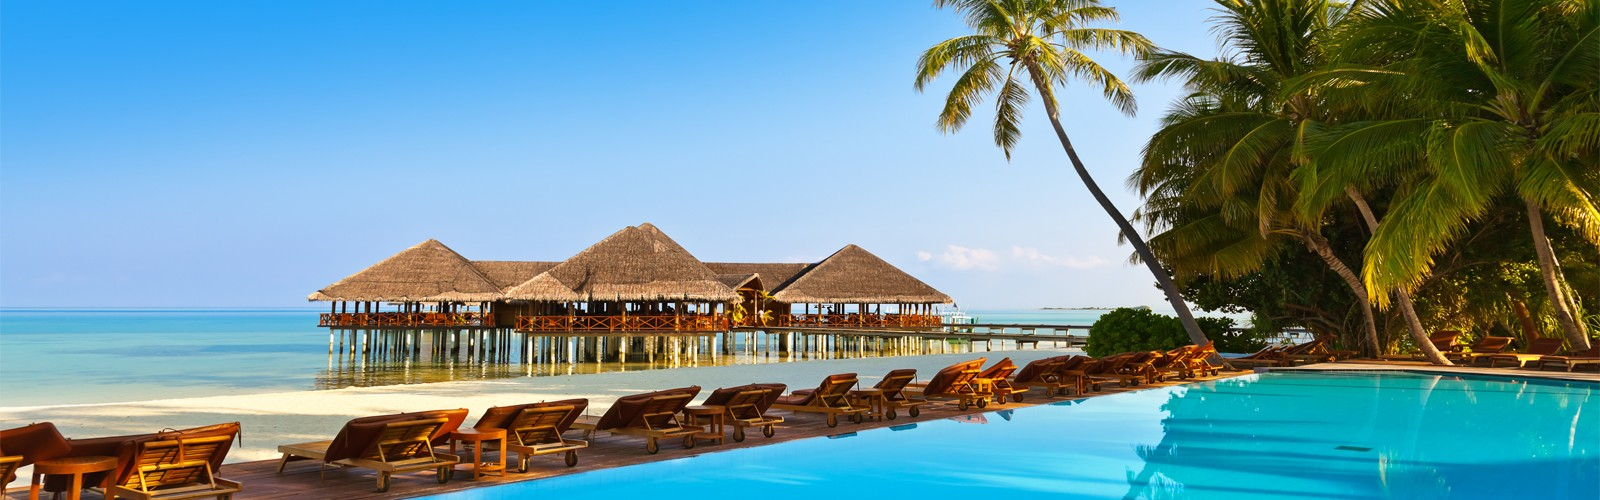 top-things-to-do-in-maldives-blog-header-1600x500